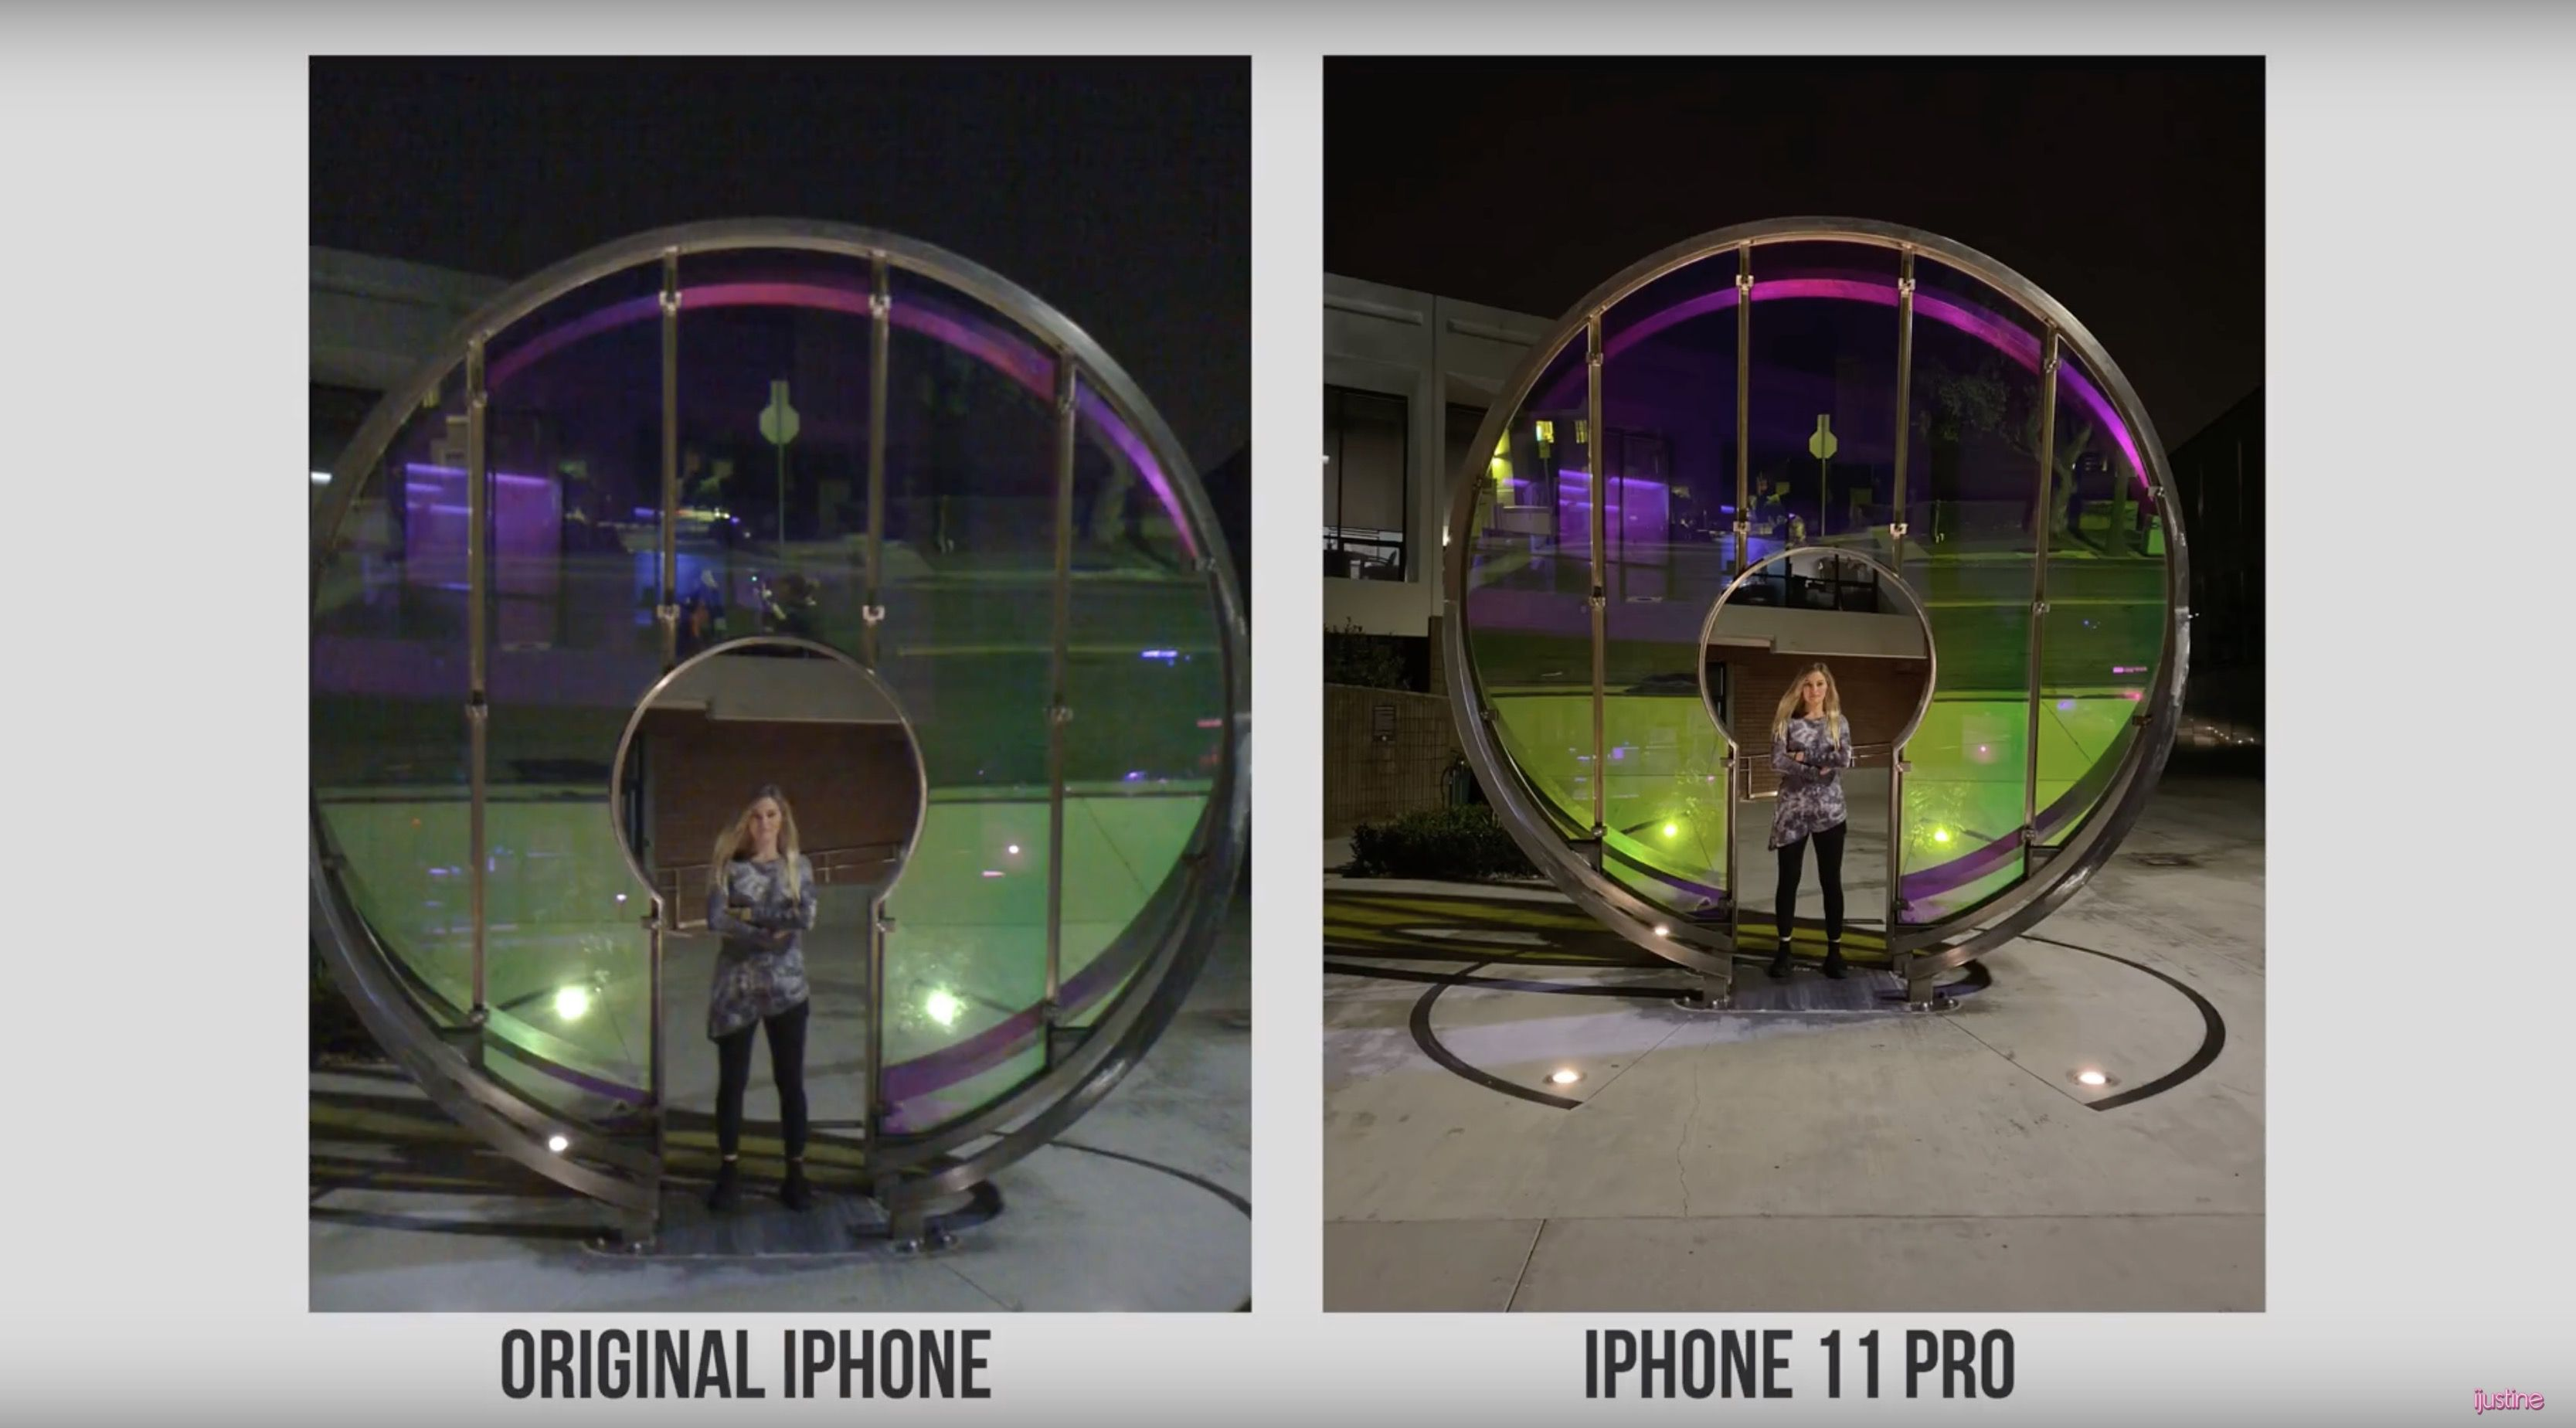 iPhone 11 Pro camera vs. original iPhone night shot